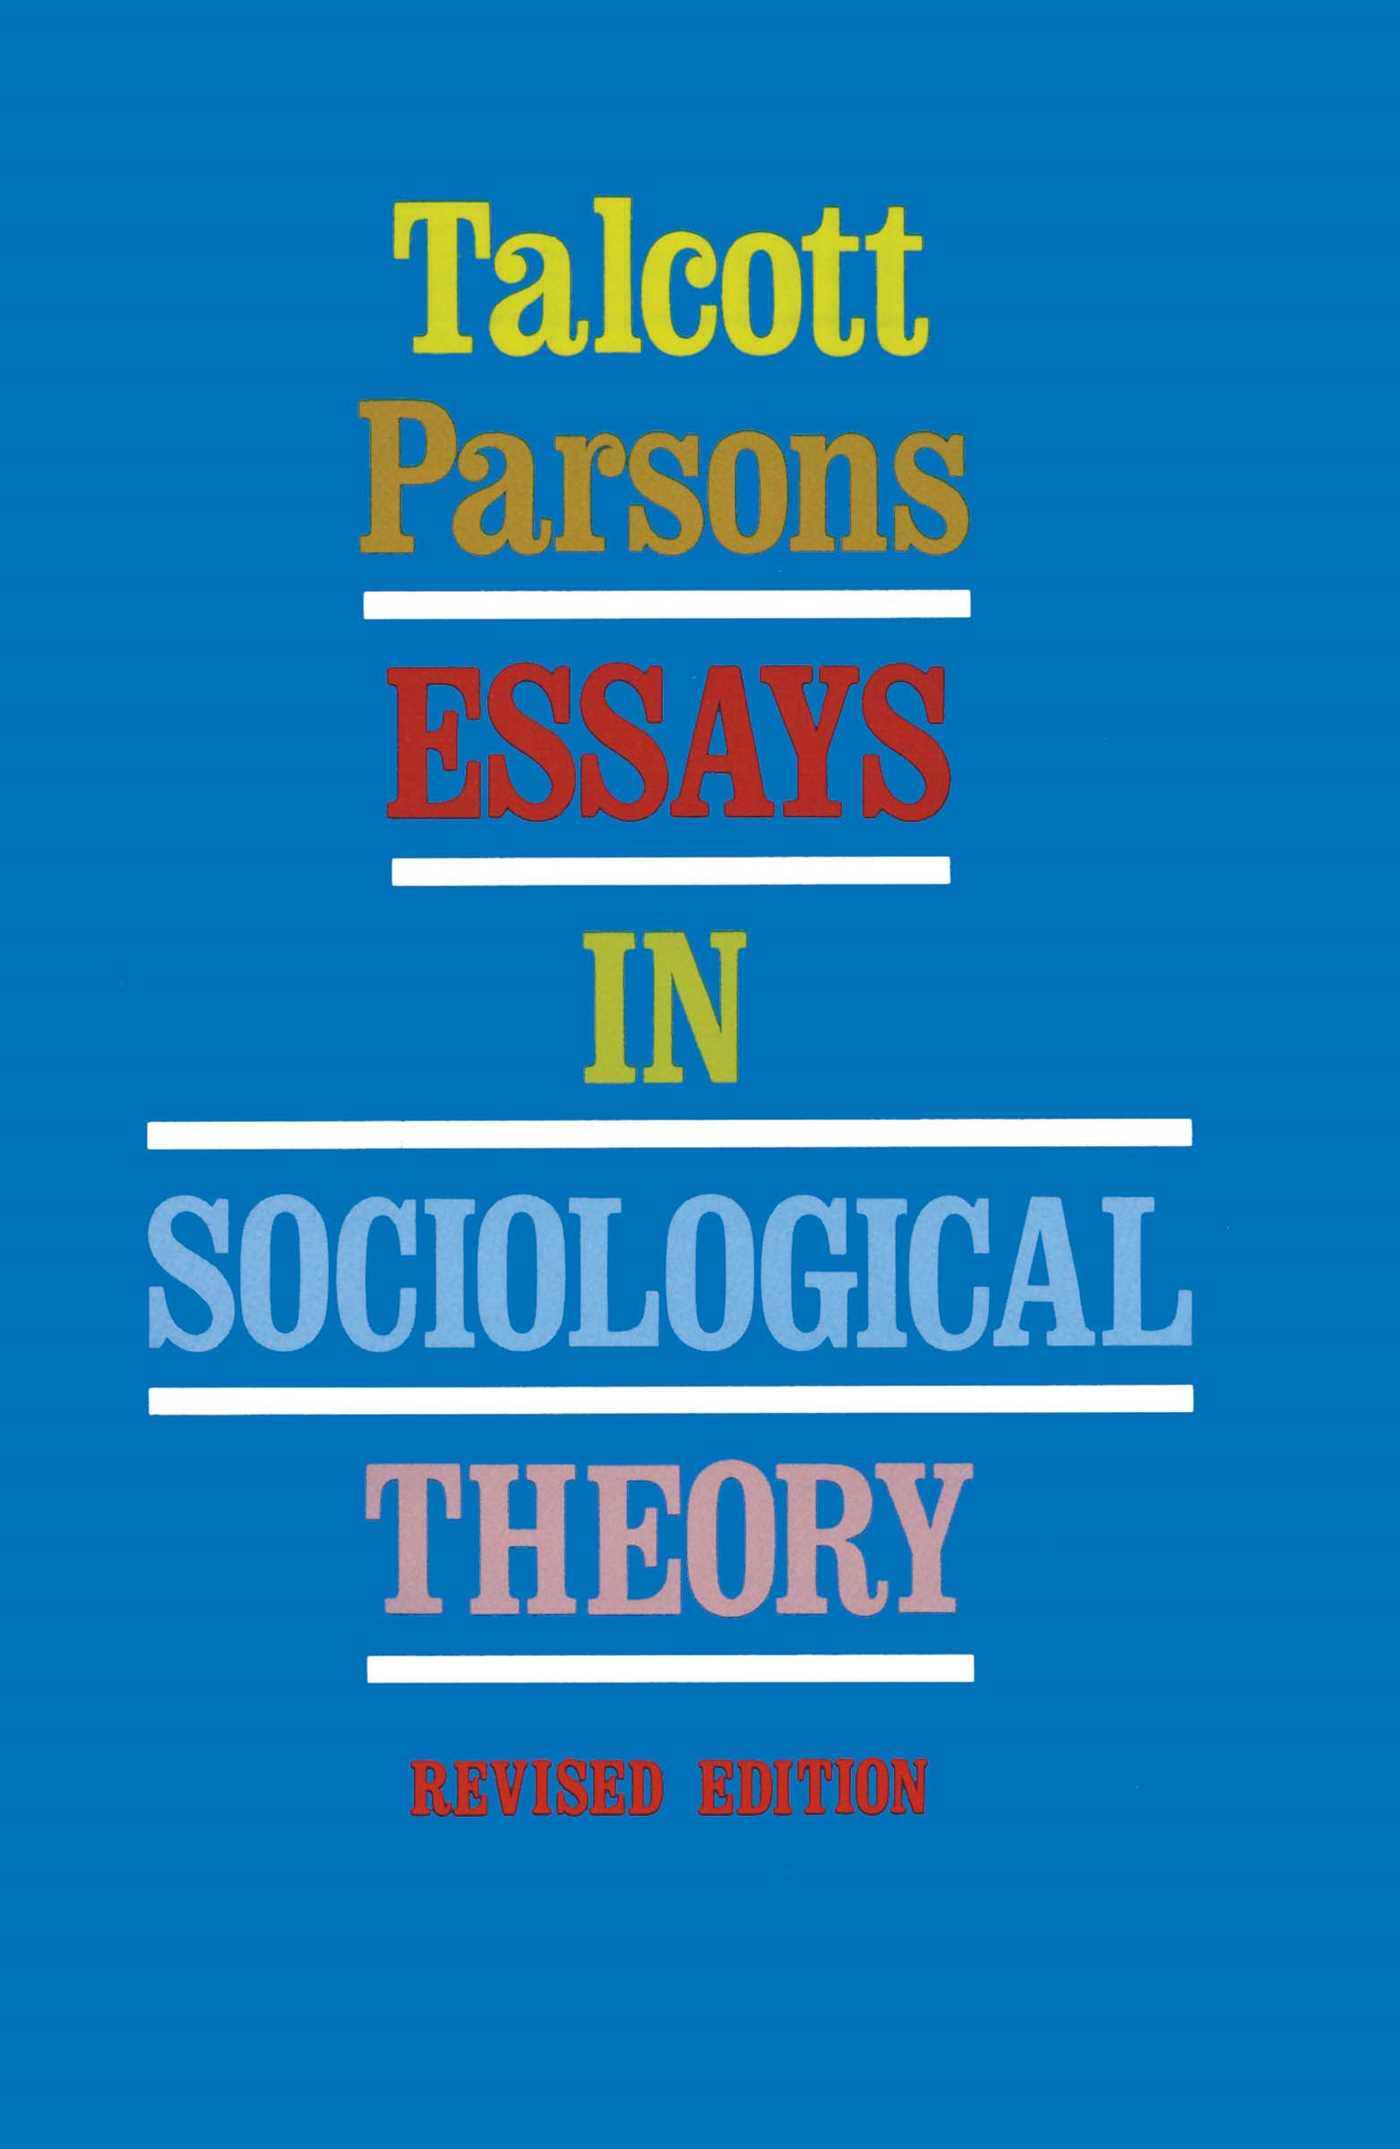 essays in social theory Term papers and essays on interest group theory chicago school criminology crime theory social disorganization from the perspective of sociological theory.